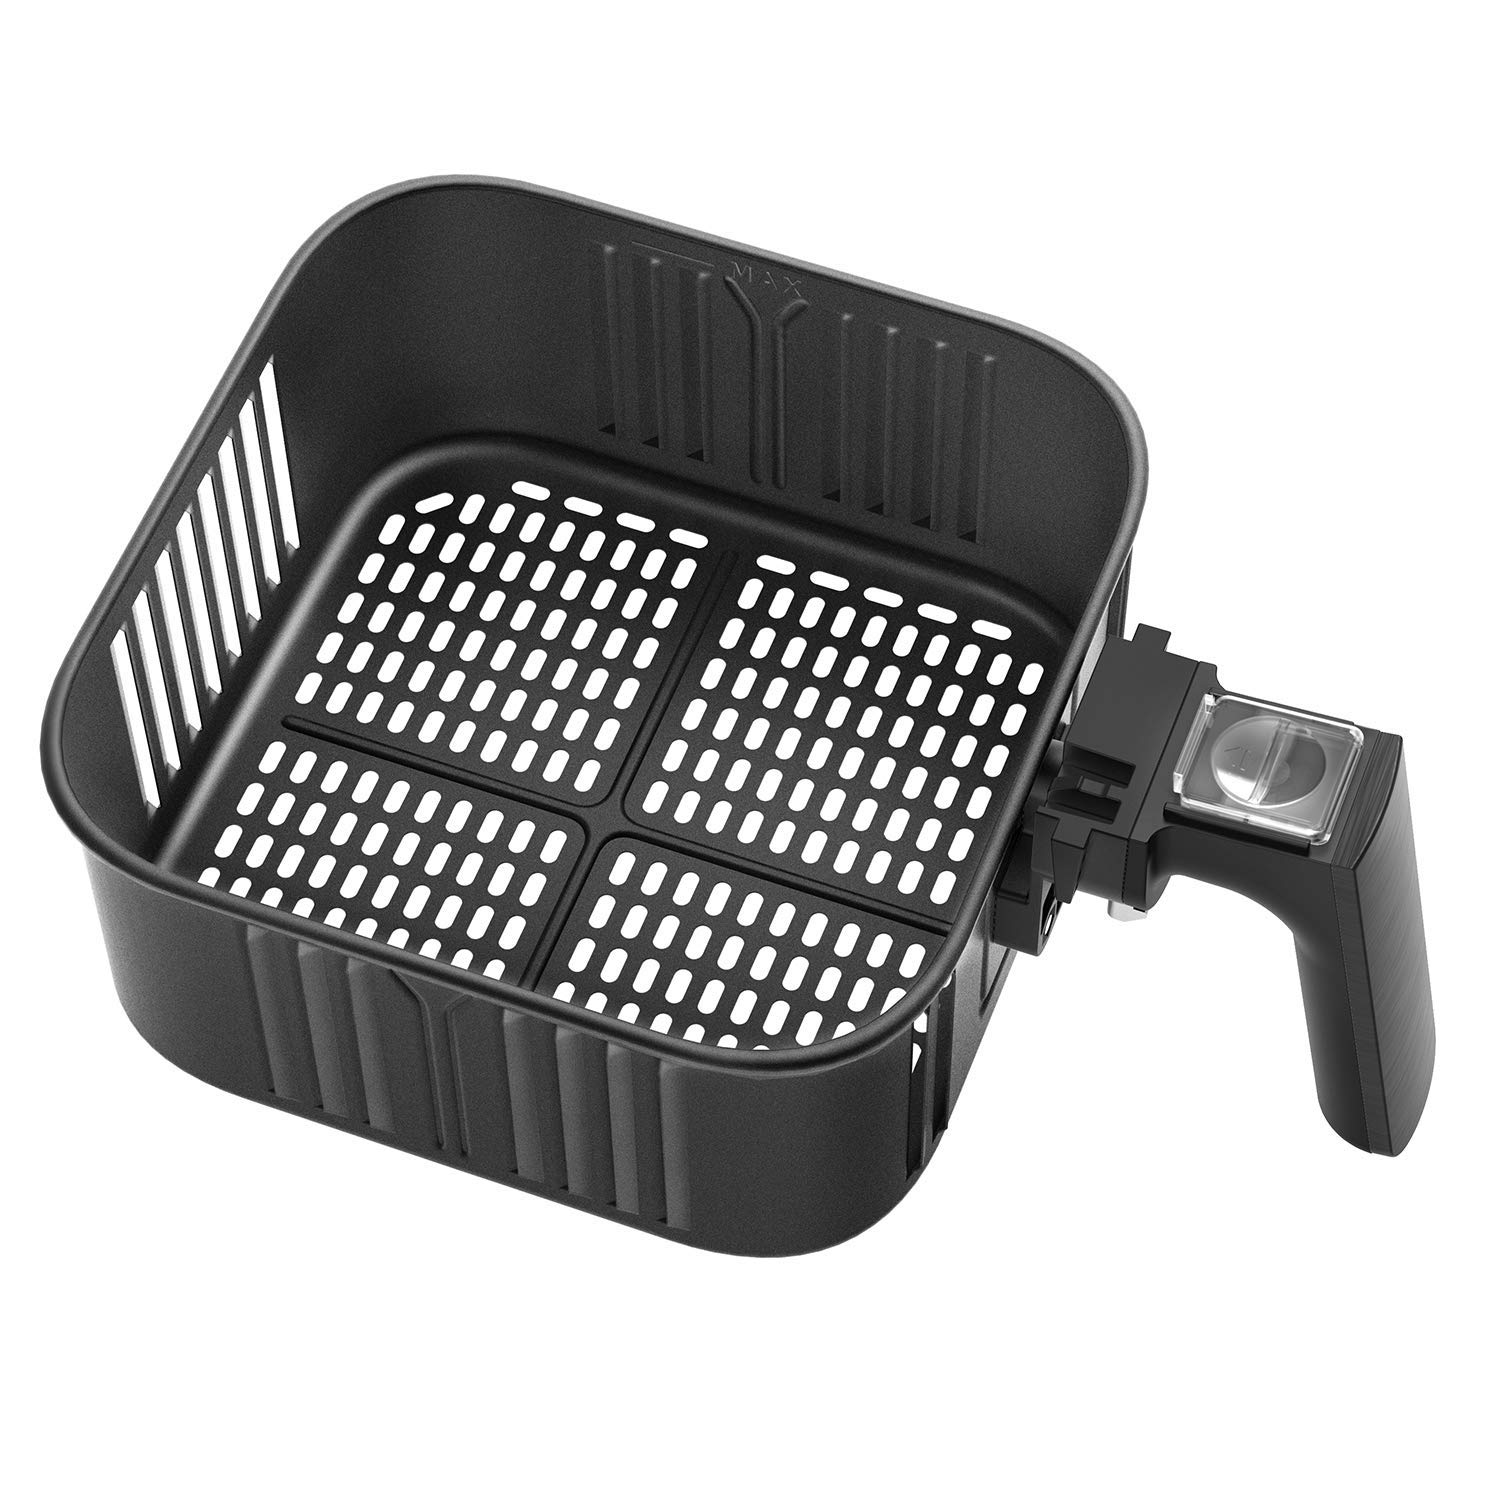 Air Fryer Replacement Basket For Cosori 5.8Qt Air Fryer, C158-FB, Non-Stick Fry Basket, Dishwasher Safe, FDA Compliant, 2-Year Warranty (Renewed)